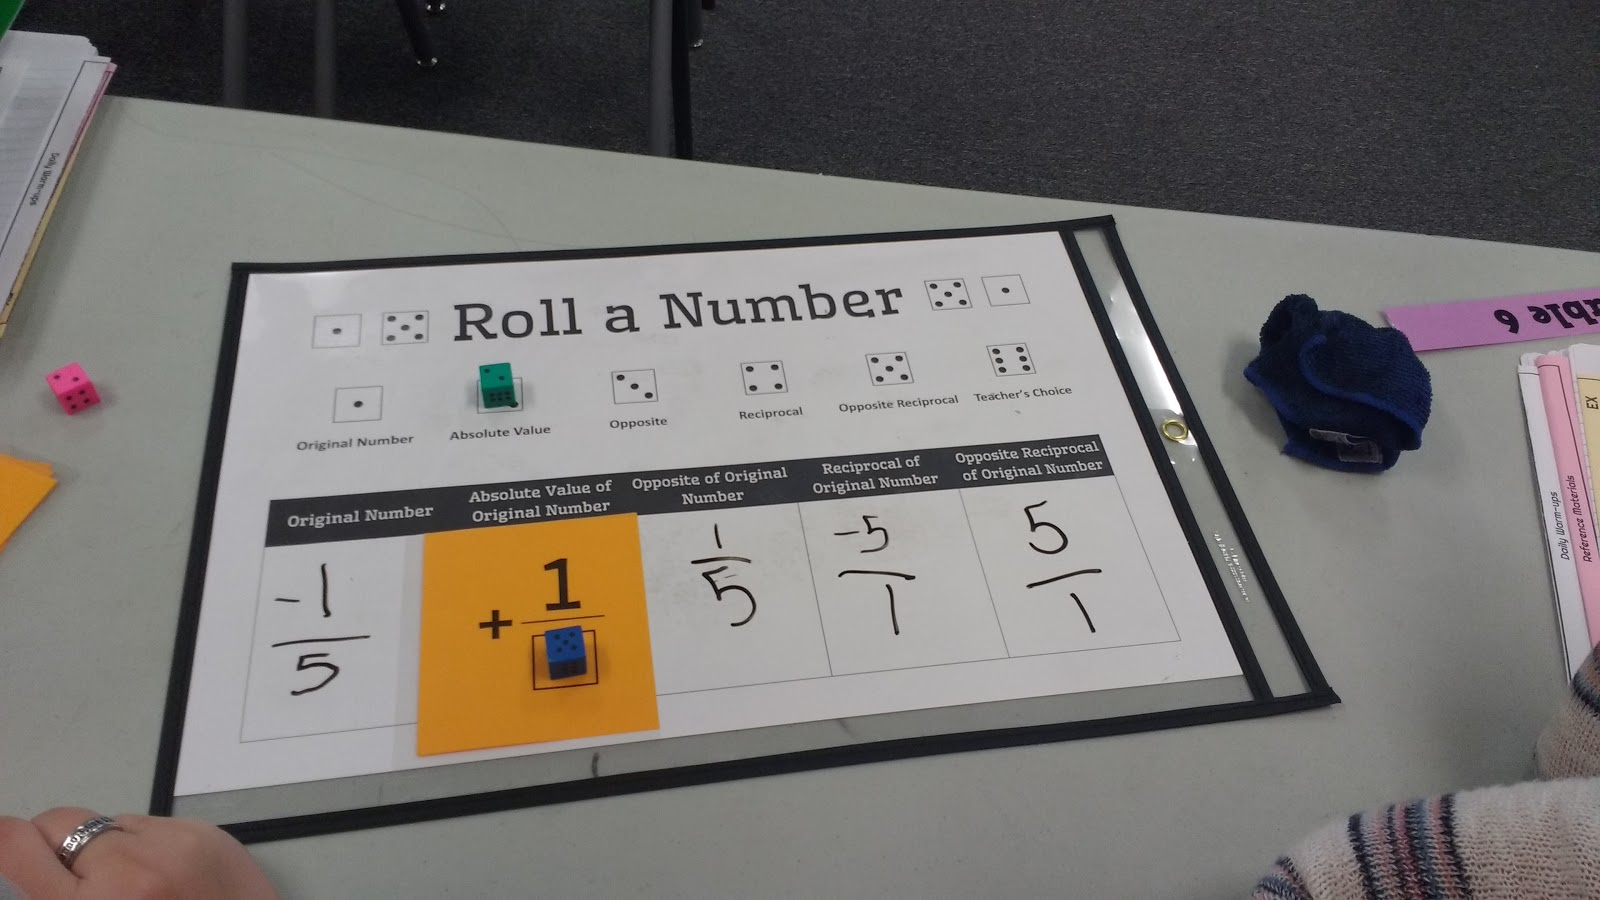 Math Love Roll A Number Dice Activity For Practicing Absolute Value Opposite Reciprocal